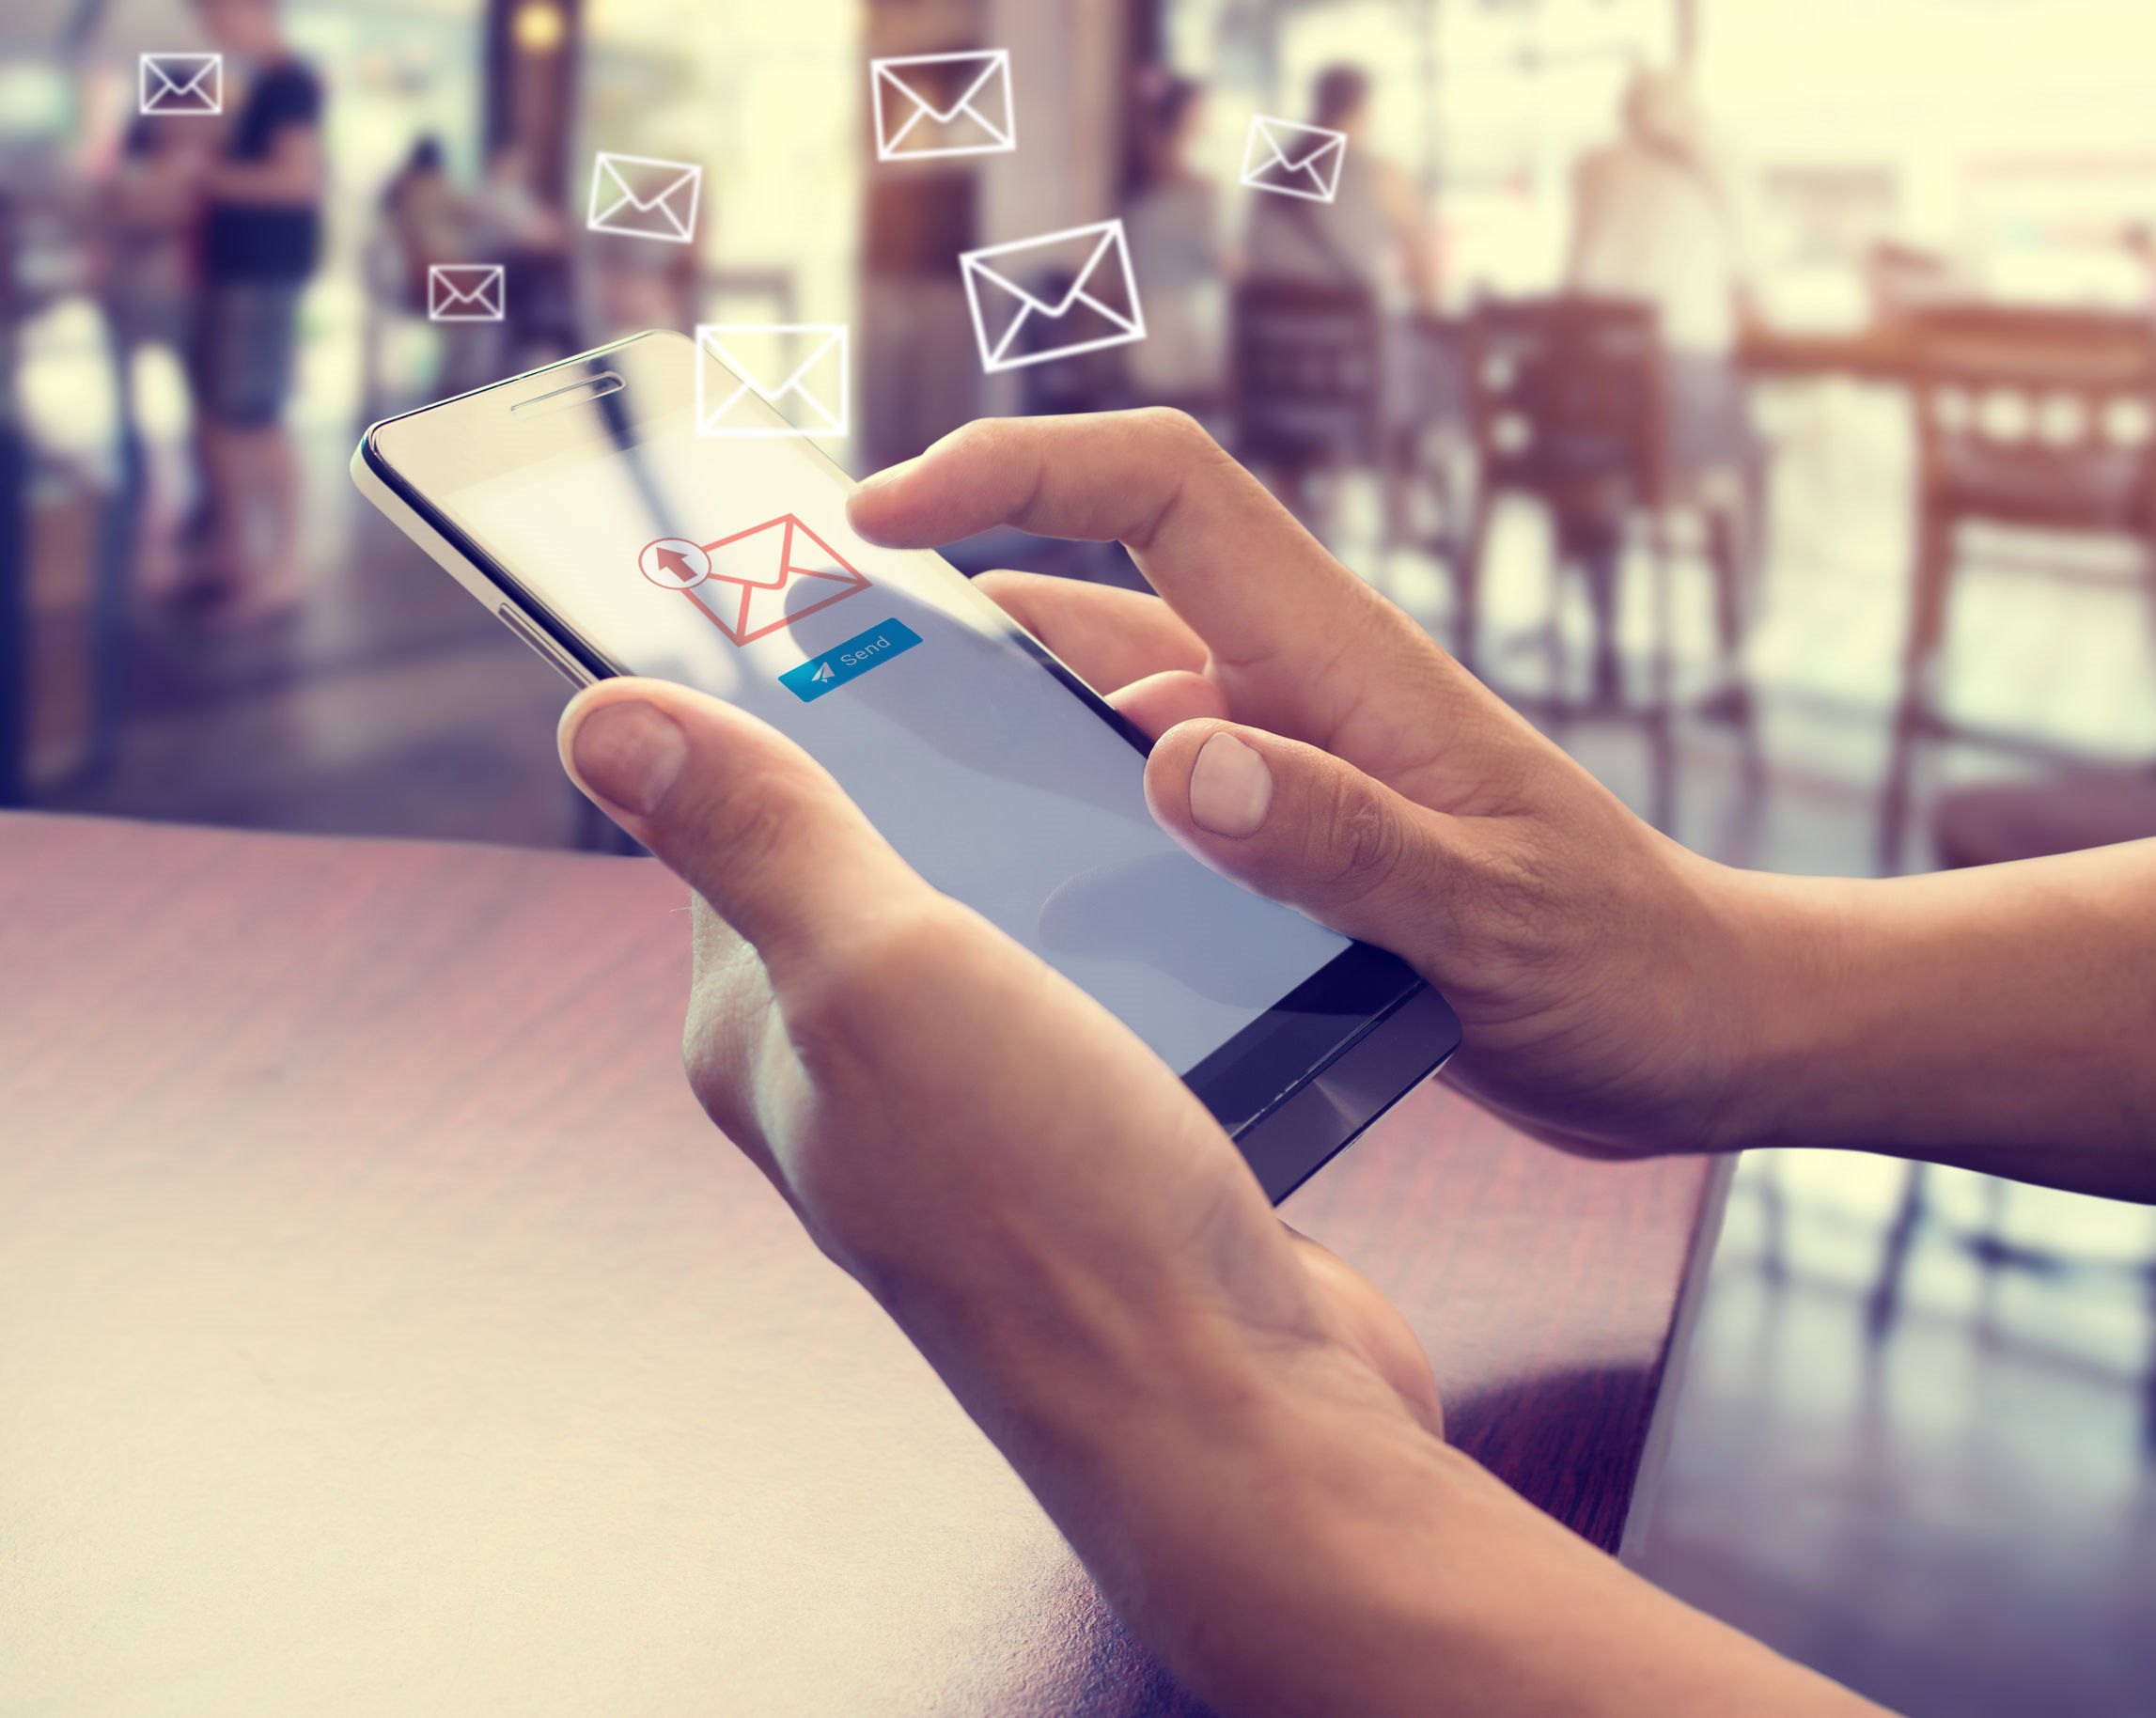 Learn how you can use email and SMS to boost your business. Read our blog to find out!